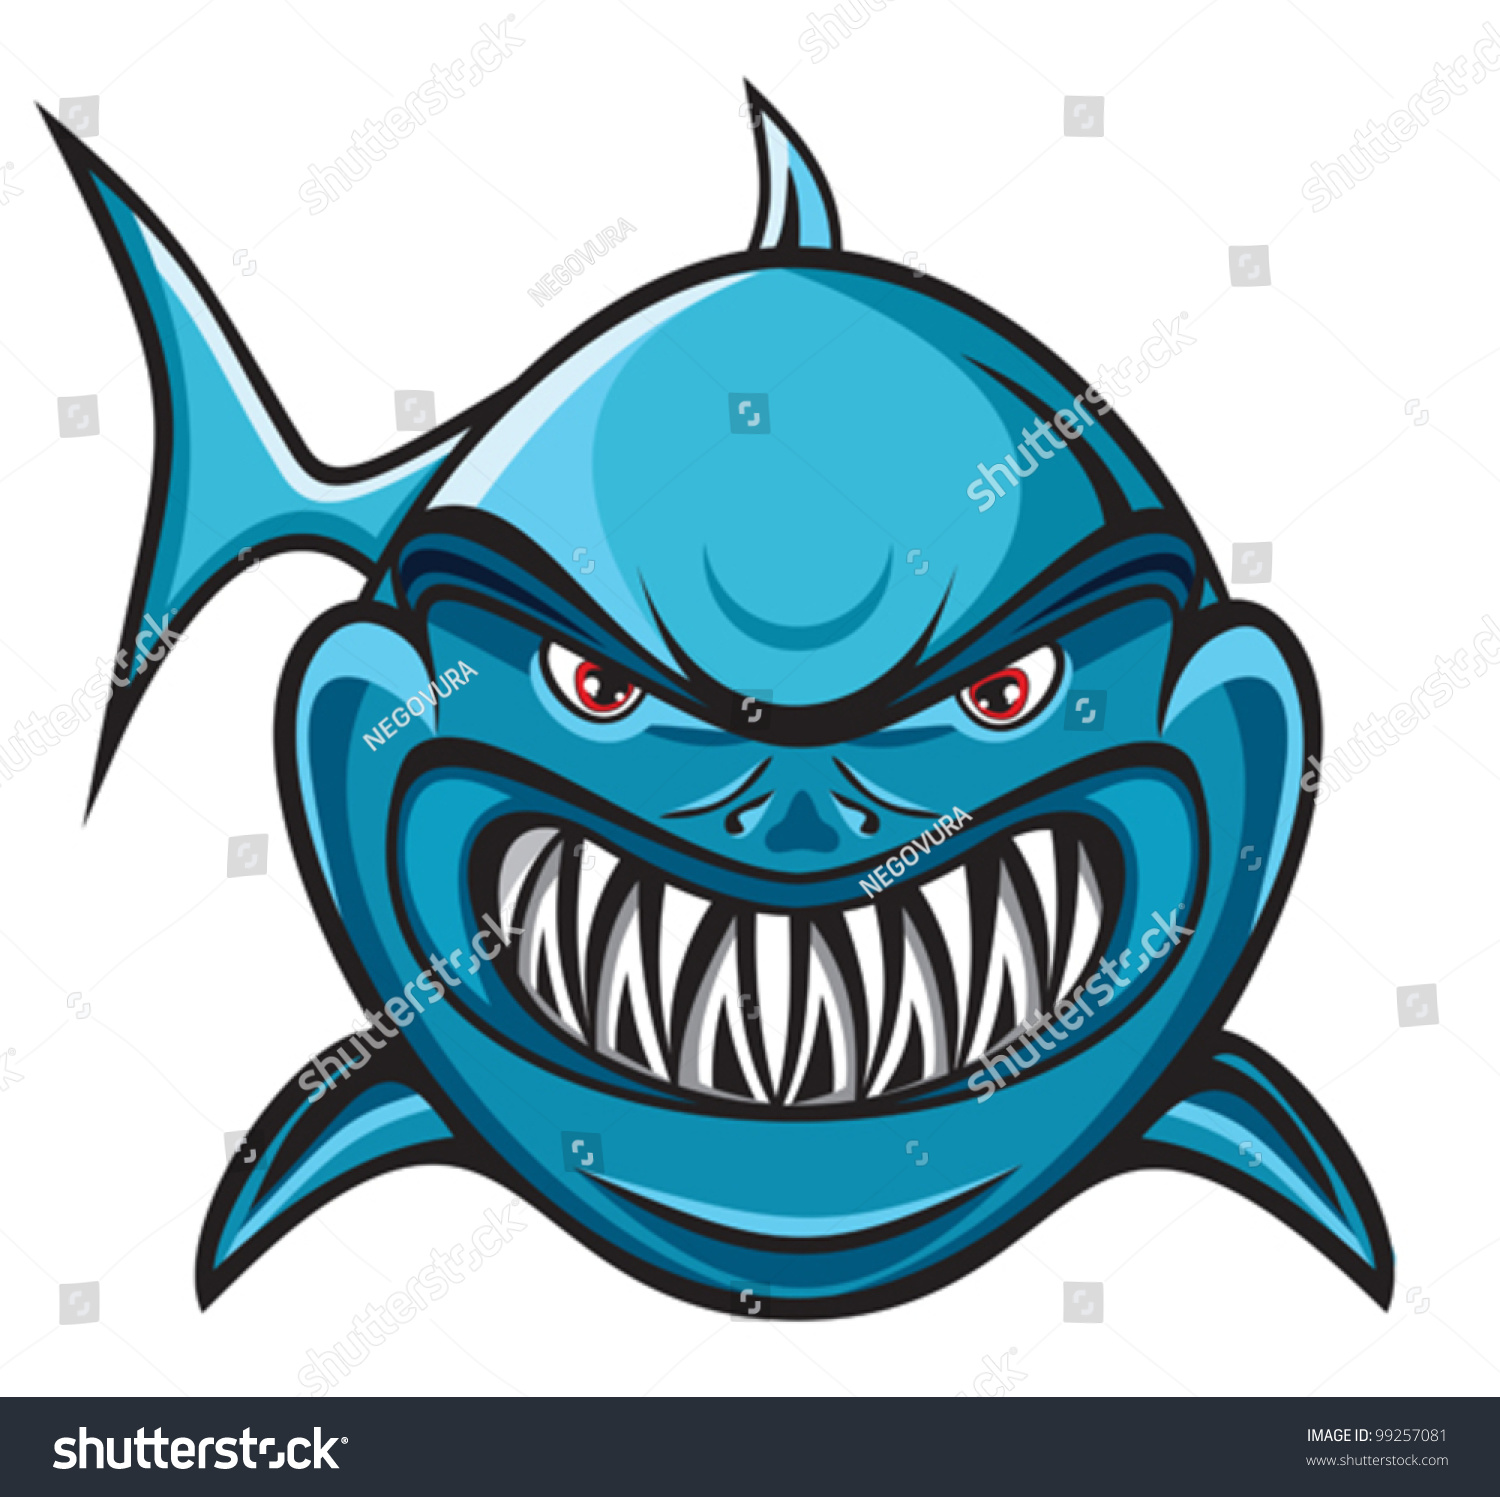 Angry shark clipart - photo#24